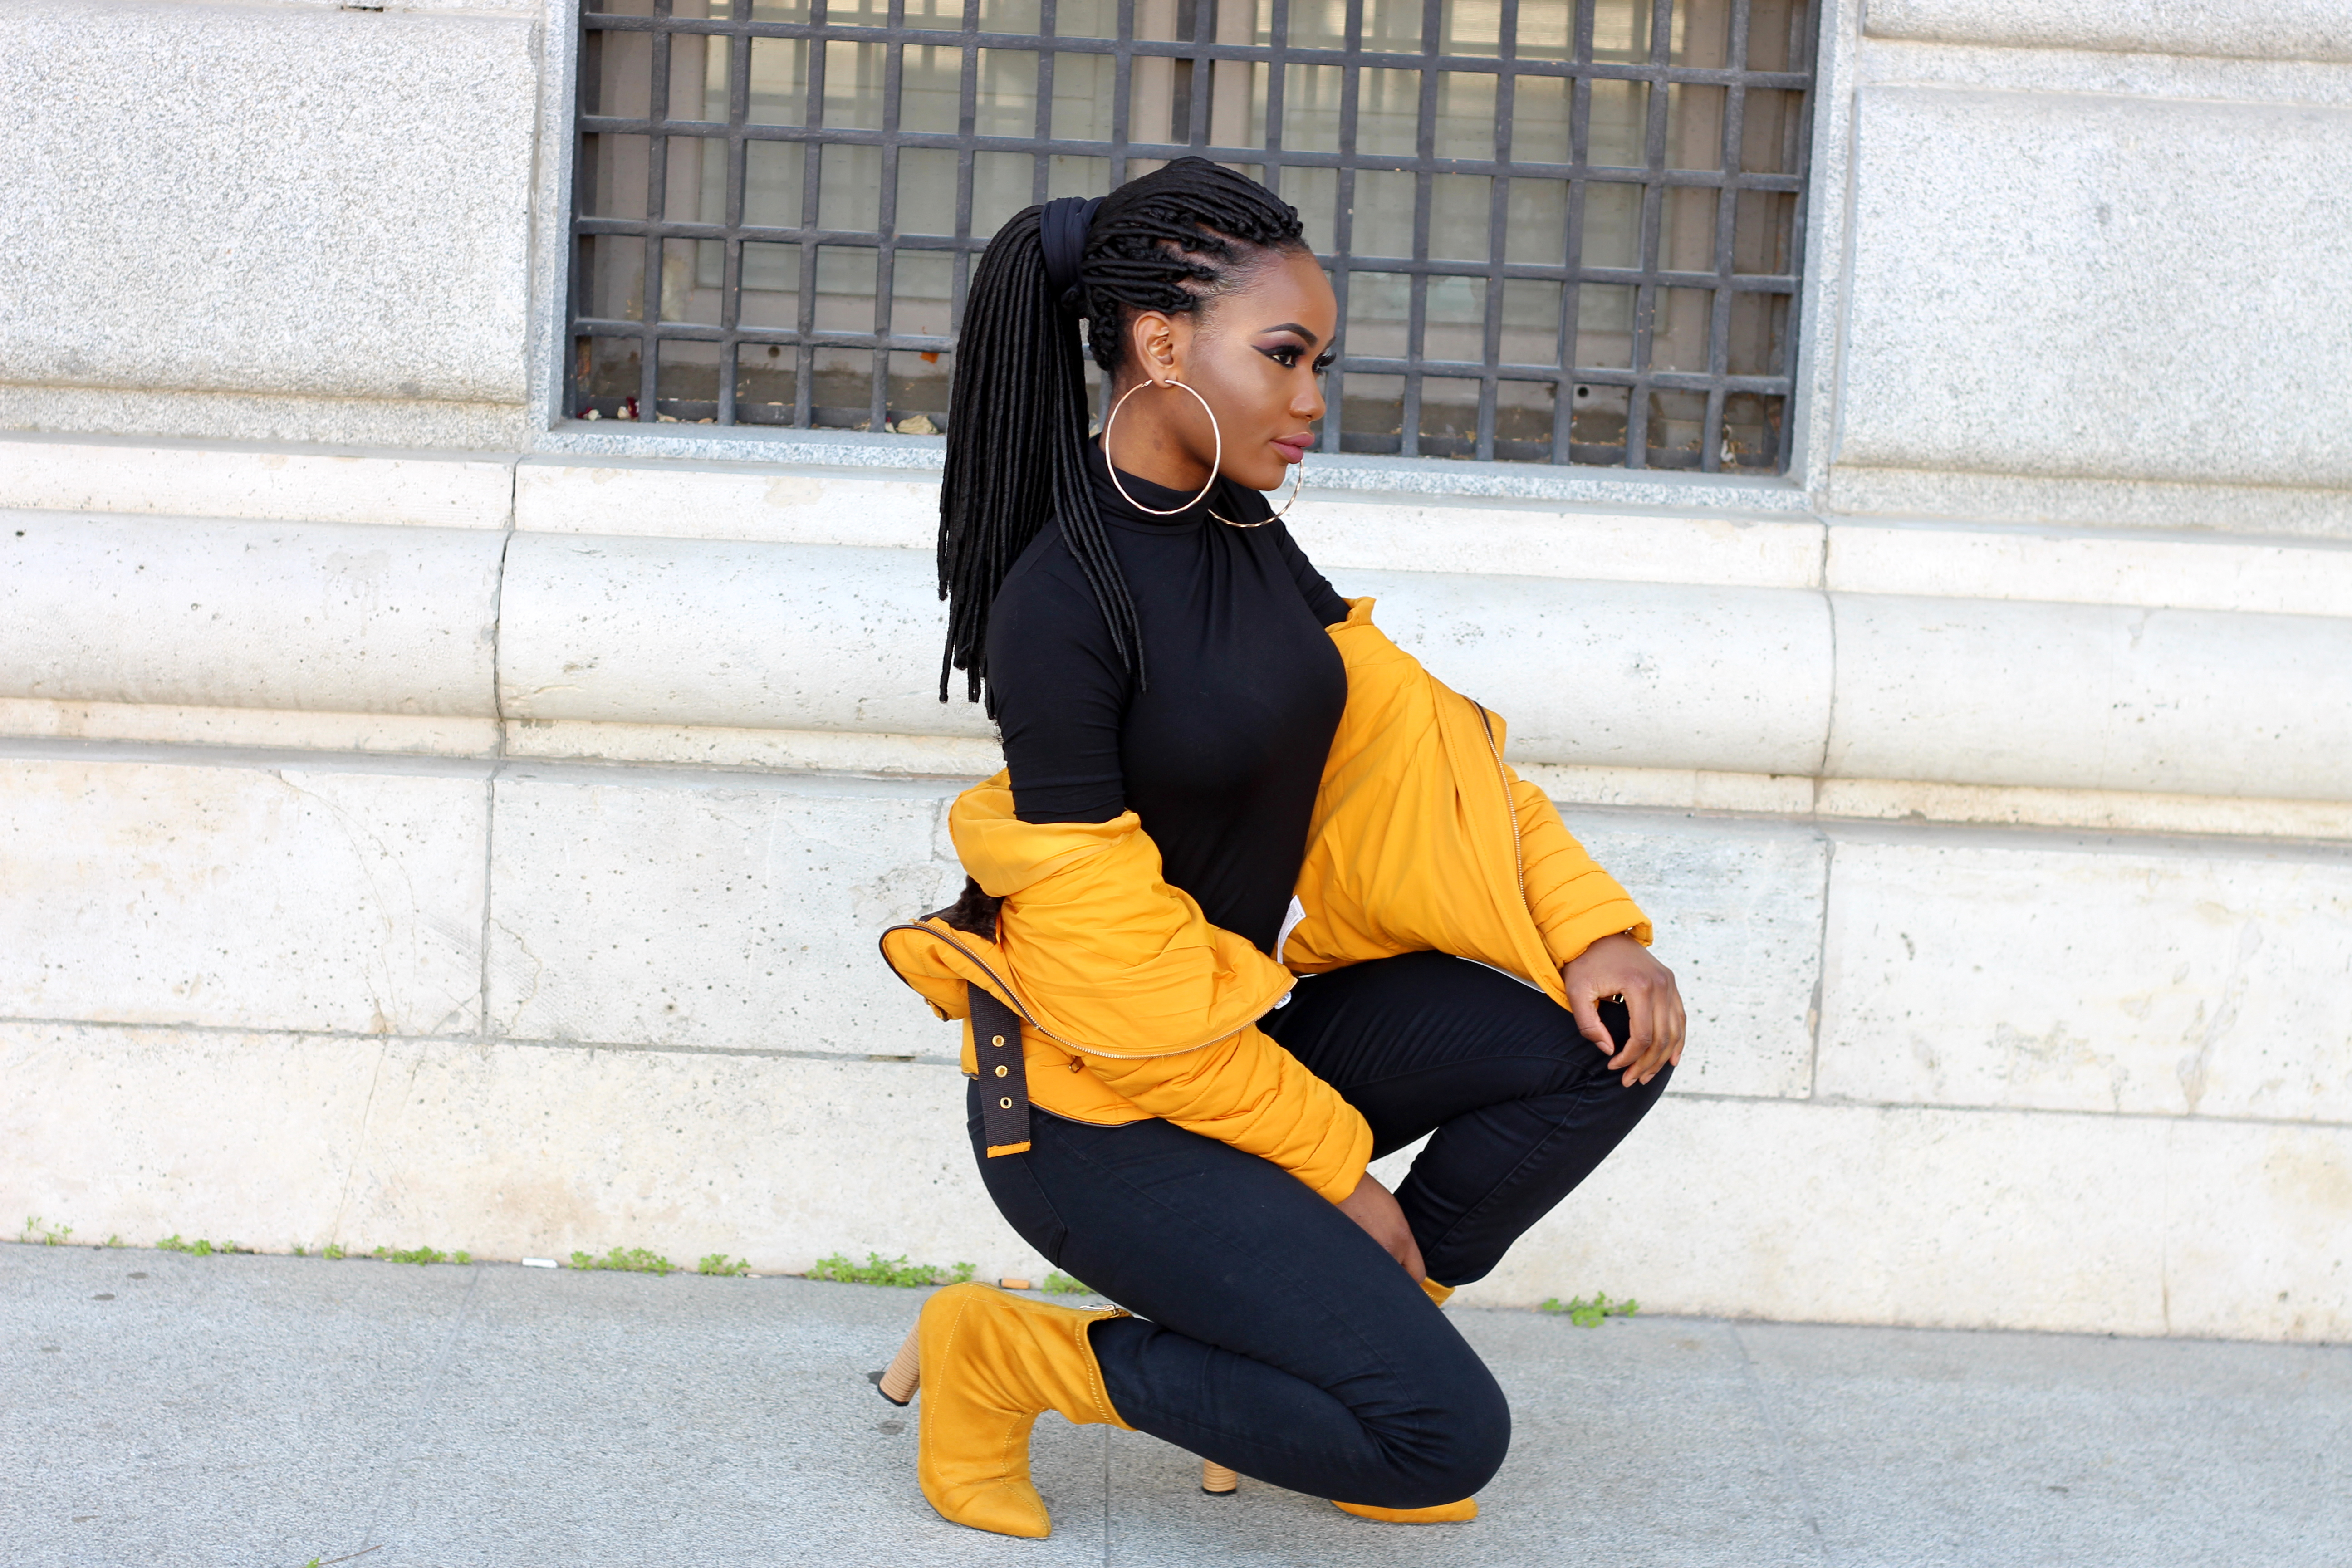 Billykiss Azeez. Your Favourite Muse. Fashion Irish Blogger. African Blogger. Street style. Zara Puff Mustard Jacket. Stradivarius Black Turtleneck. H&M Black Denim Jeans. Ego Mustard Boots. Casual Look. High Fashion. A/W 16.